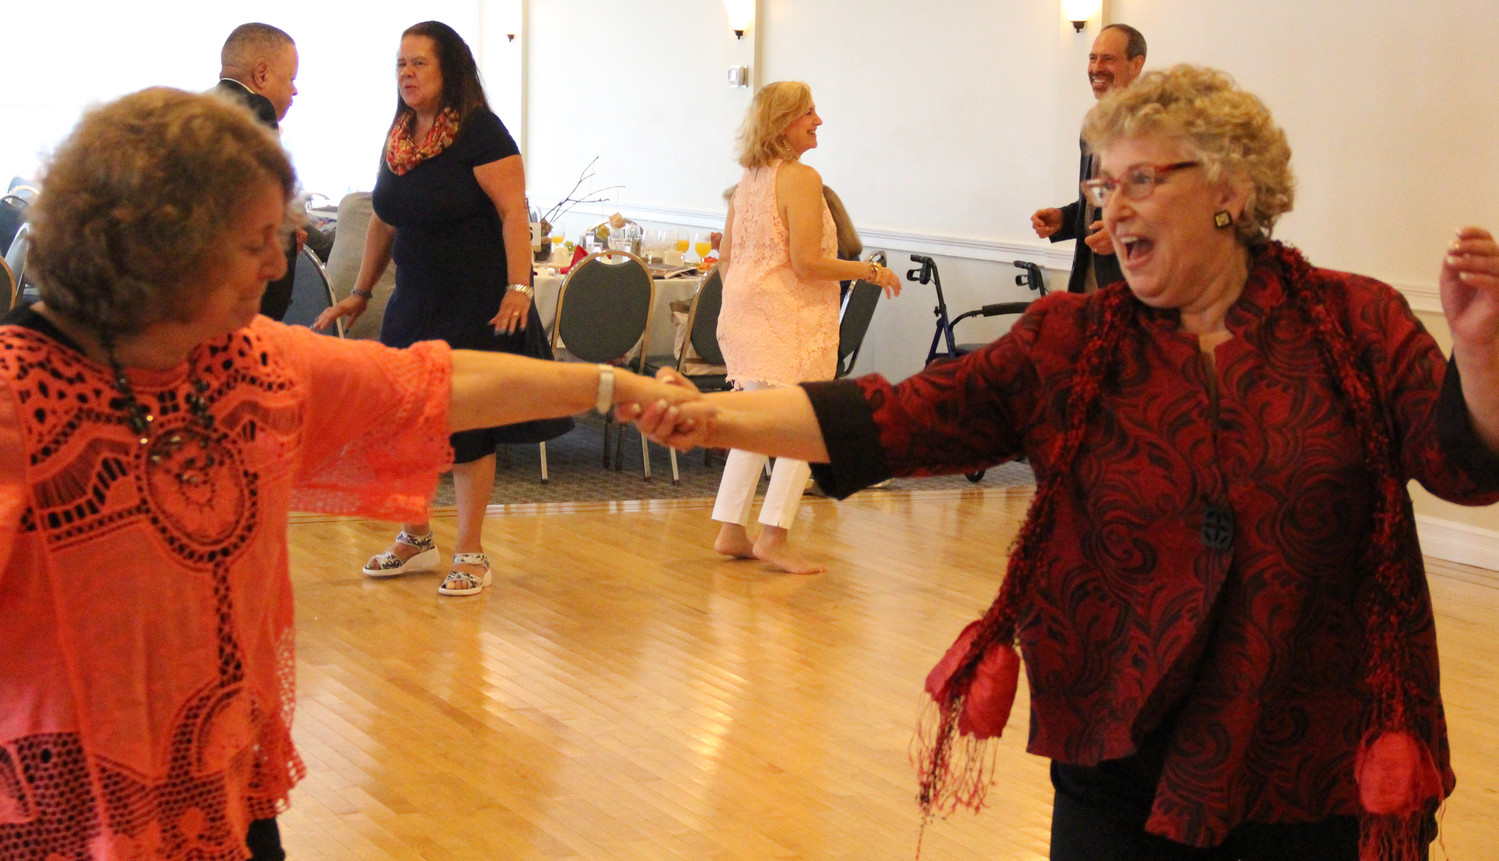 Linda Soldo, the East Meadow Public Library's newsletter editor, danced with this year's Arts Recognition Tribute Award winner Jude Schanzer on Oct. 8.